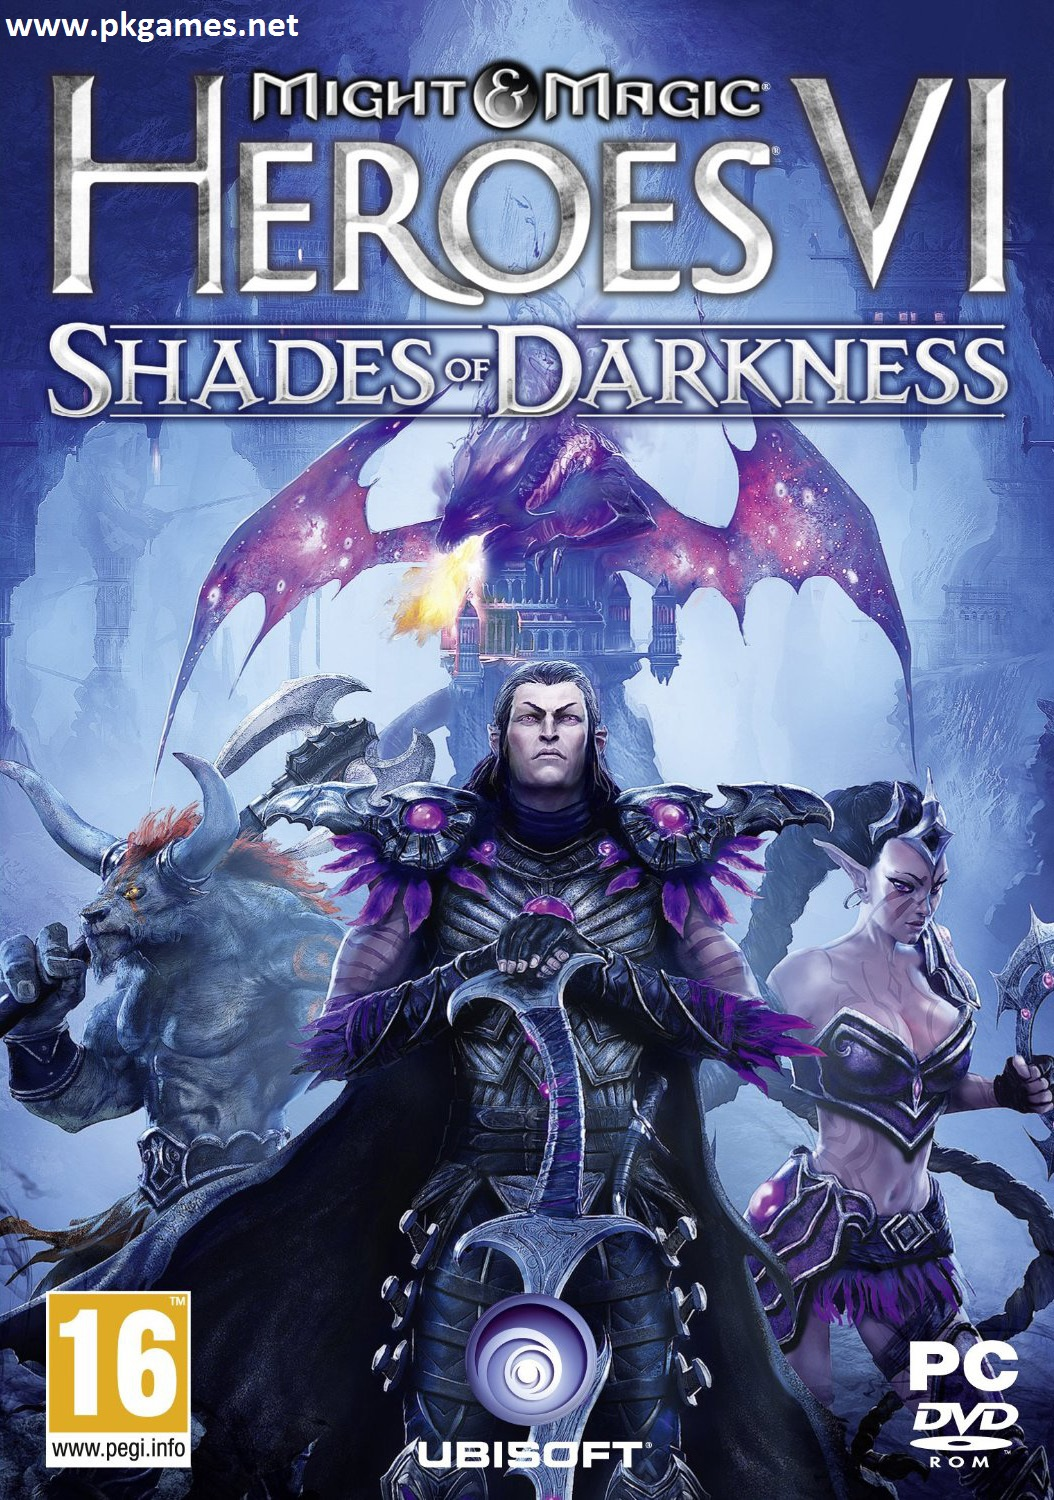 Free Download PC Games and Software: Free Download Might and Magic Heroes VI Shades of Darkness ...